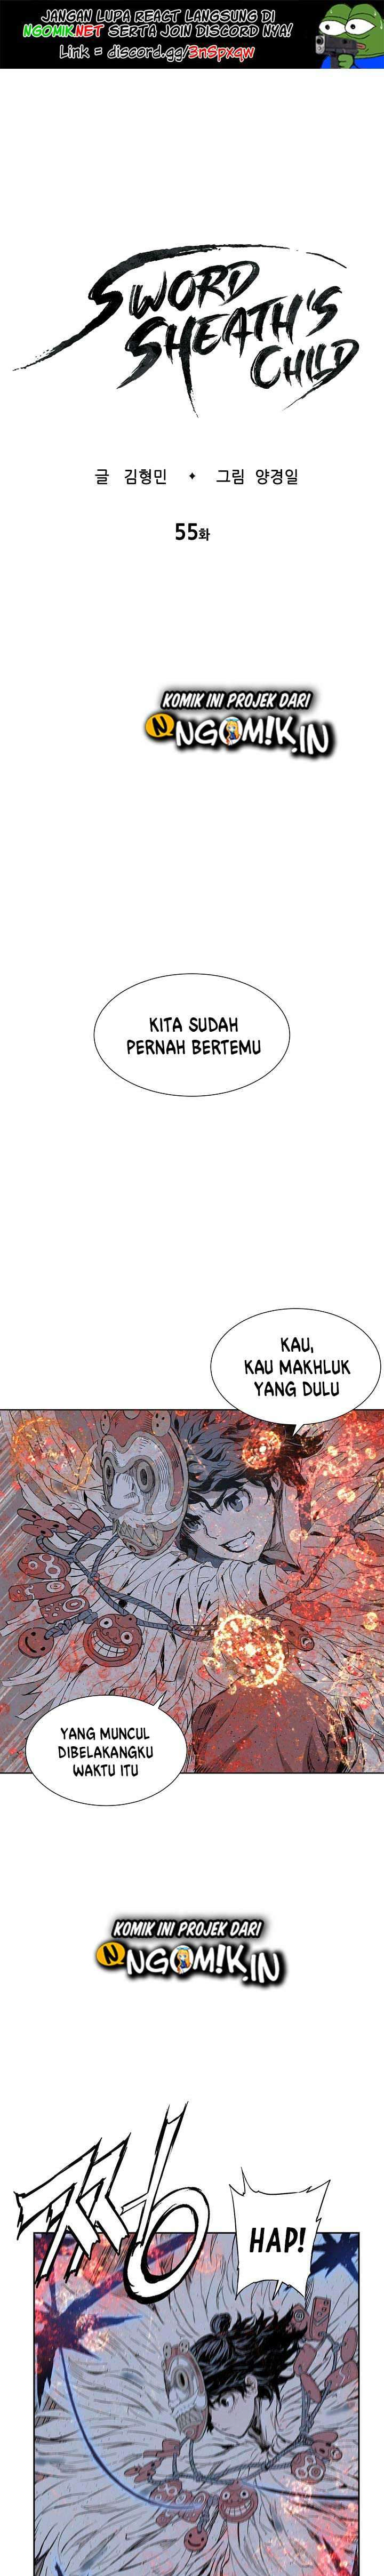 Sword Sheath's Child Chapter 55 Bahasa Indonesia page 3